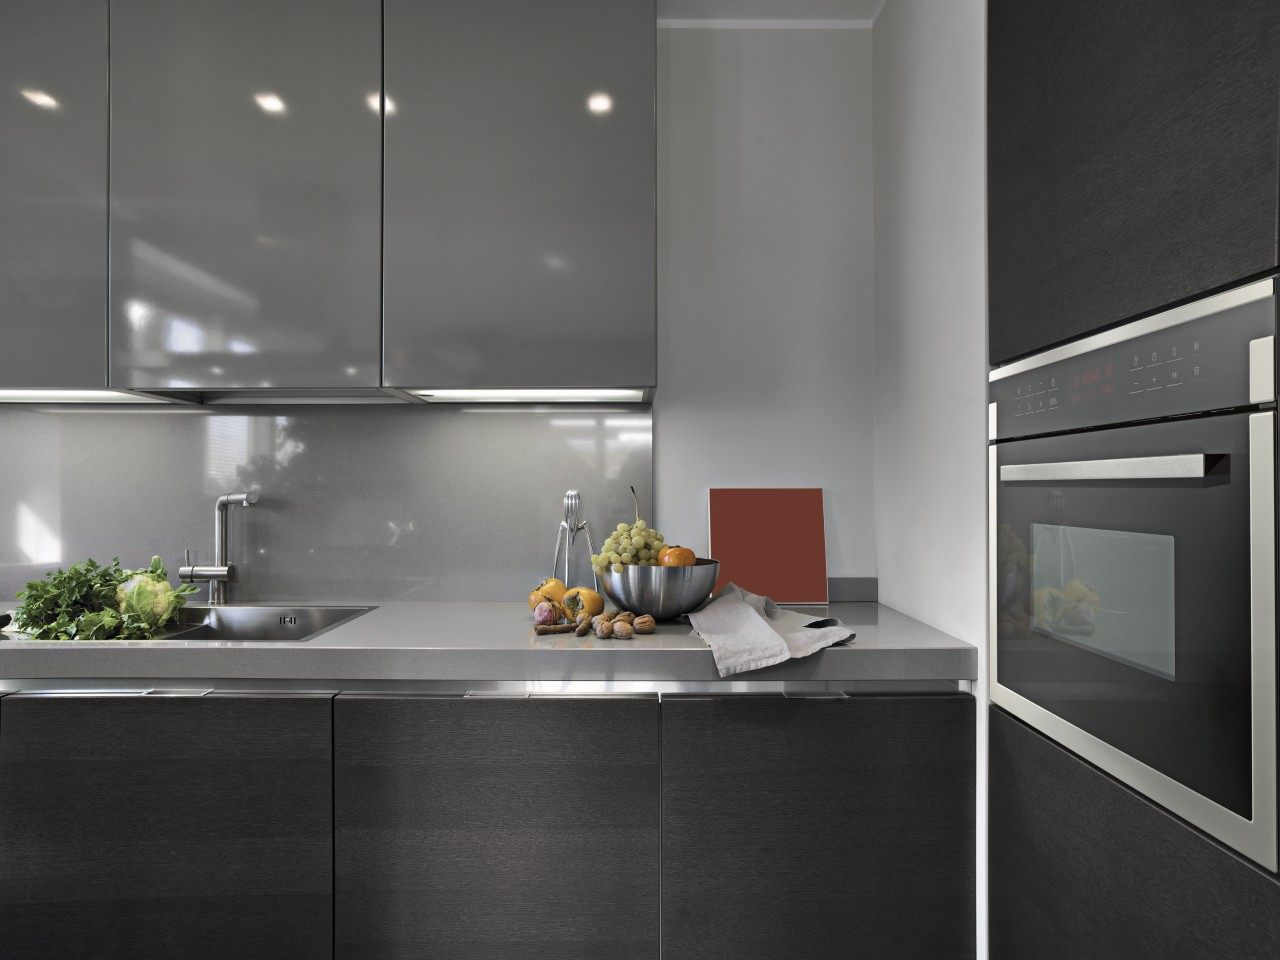 Clean-lined appliances from Midea can transform the look countertop, home appliance, interior design, kitchen, product design, under cabinet lighting, gray, black